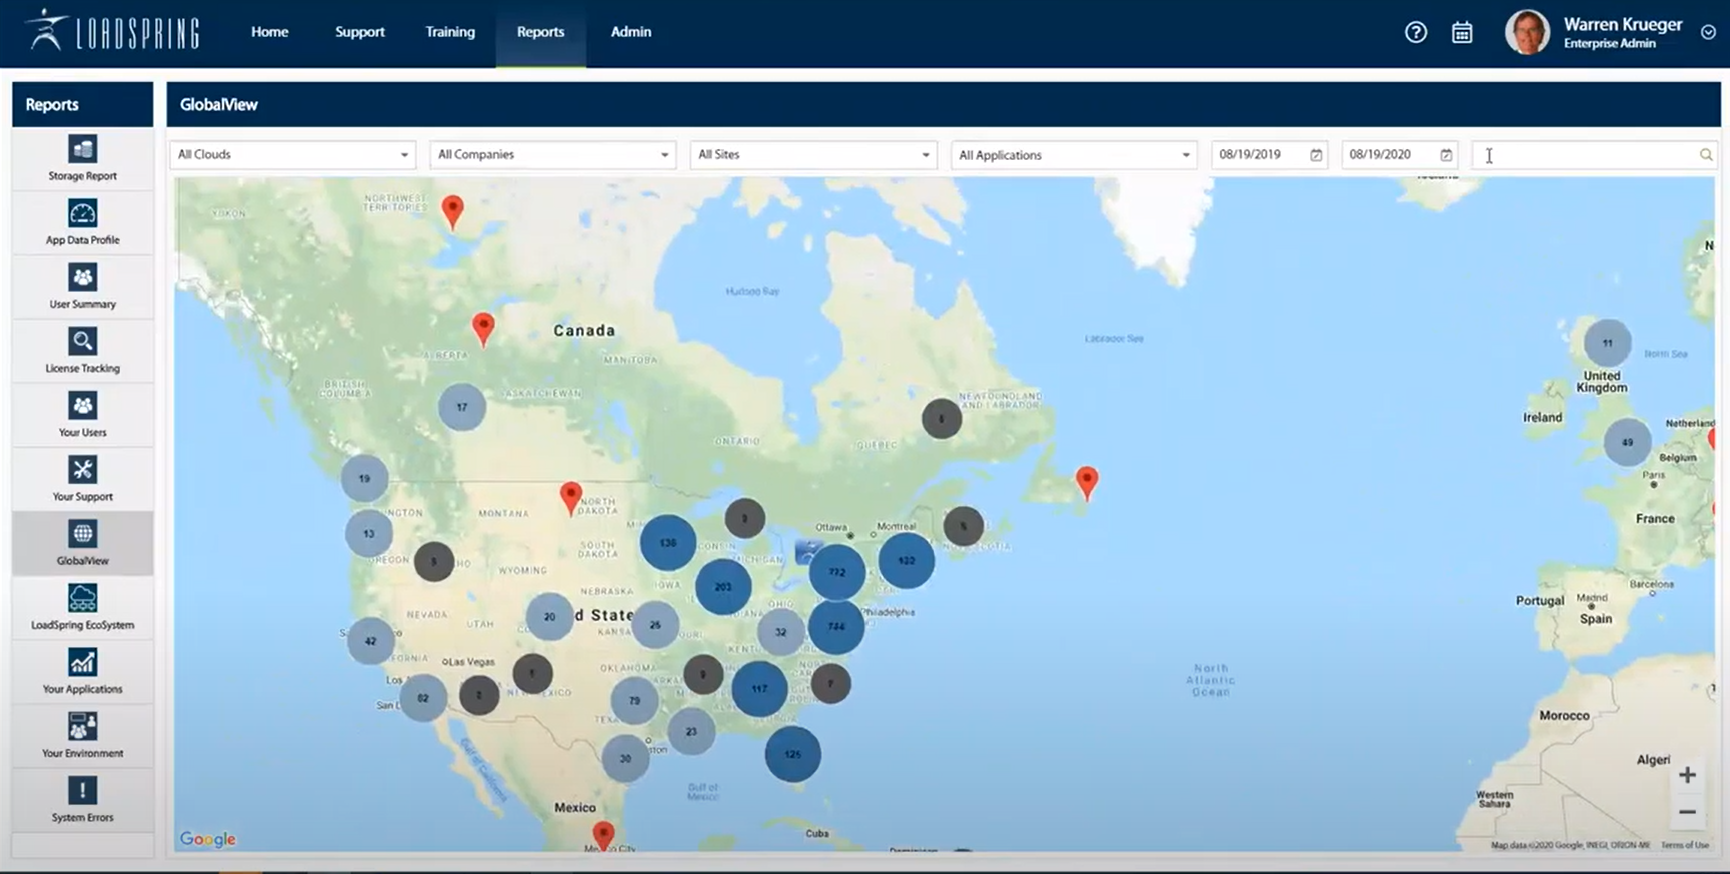 LoadSpring Cloud Platform 9.0 allows for global view reporting capabilities. Here you can quickly see users' log-in locations and search for a specific user and which applications they have launched.